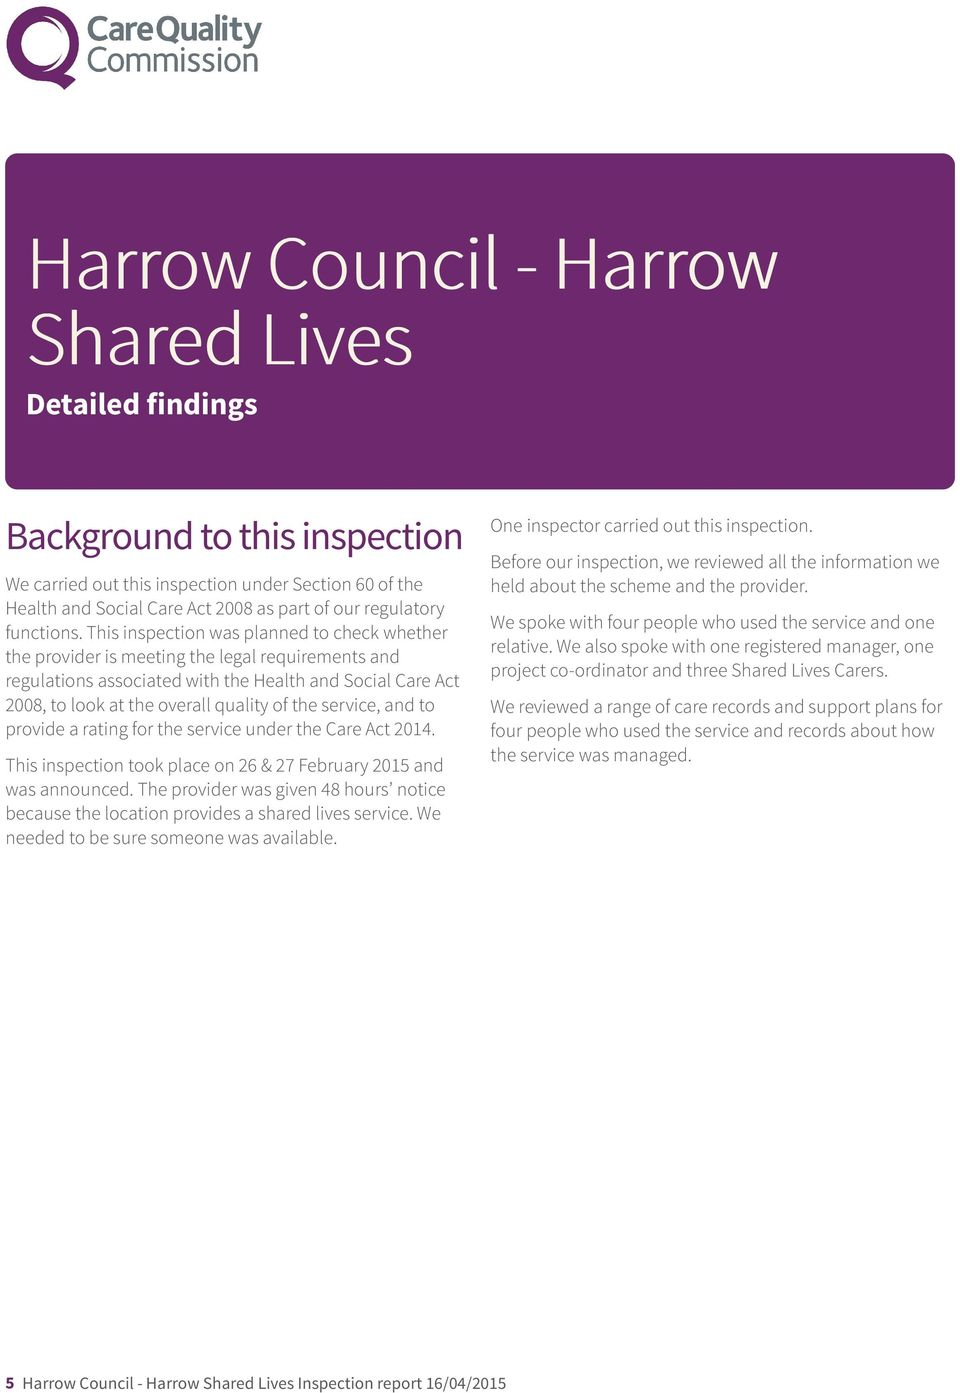 This inspection was planned to check whether the provider is meeting the legal requirements and regulations associated with the Health and Social Care Act 2008, to look at the overall quality of the